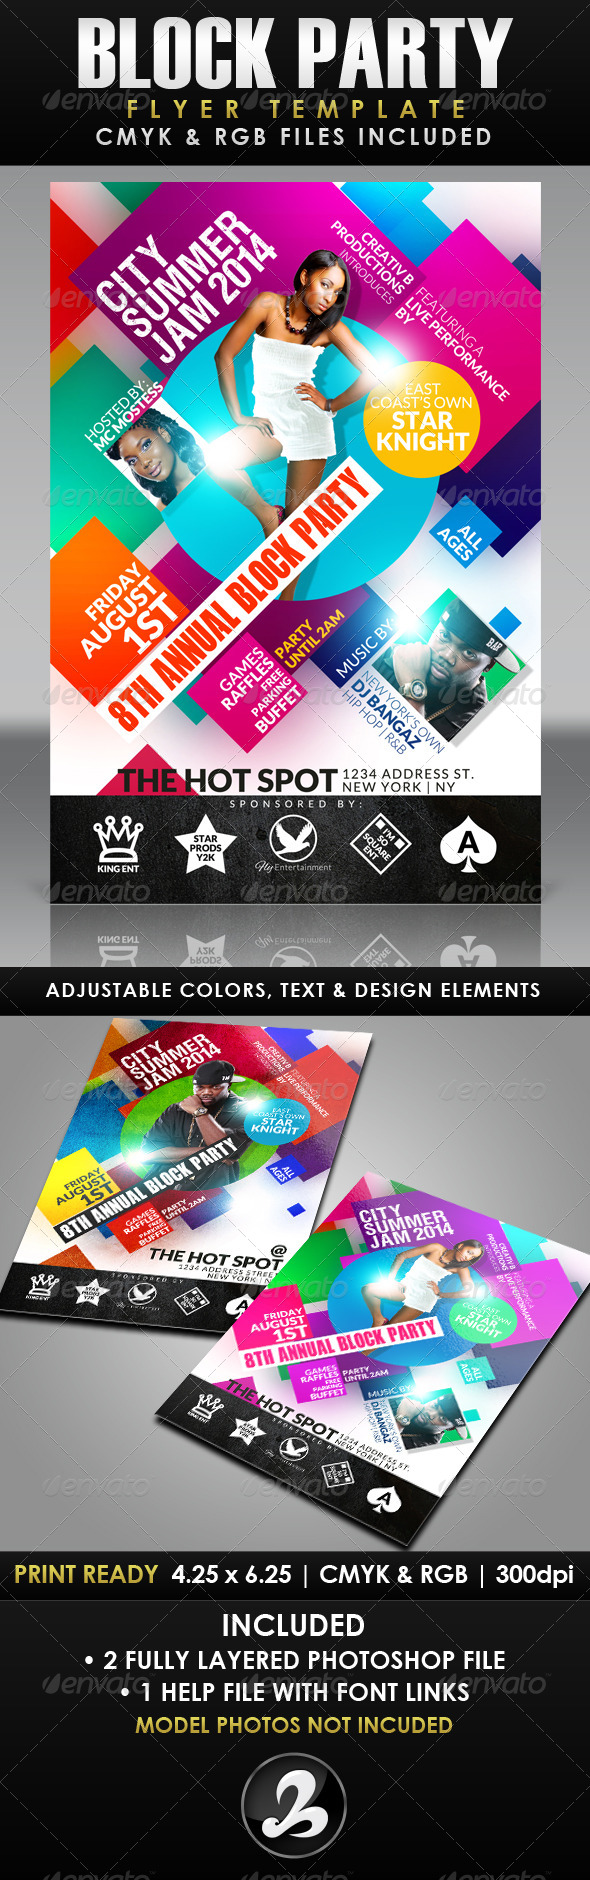 GraphicRiver Block Party Flyer Template 8022402